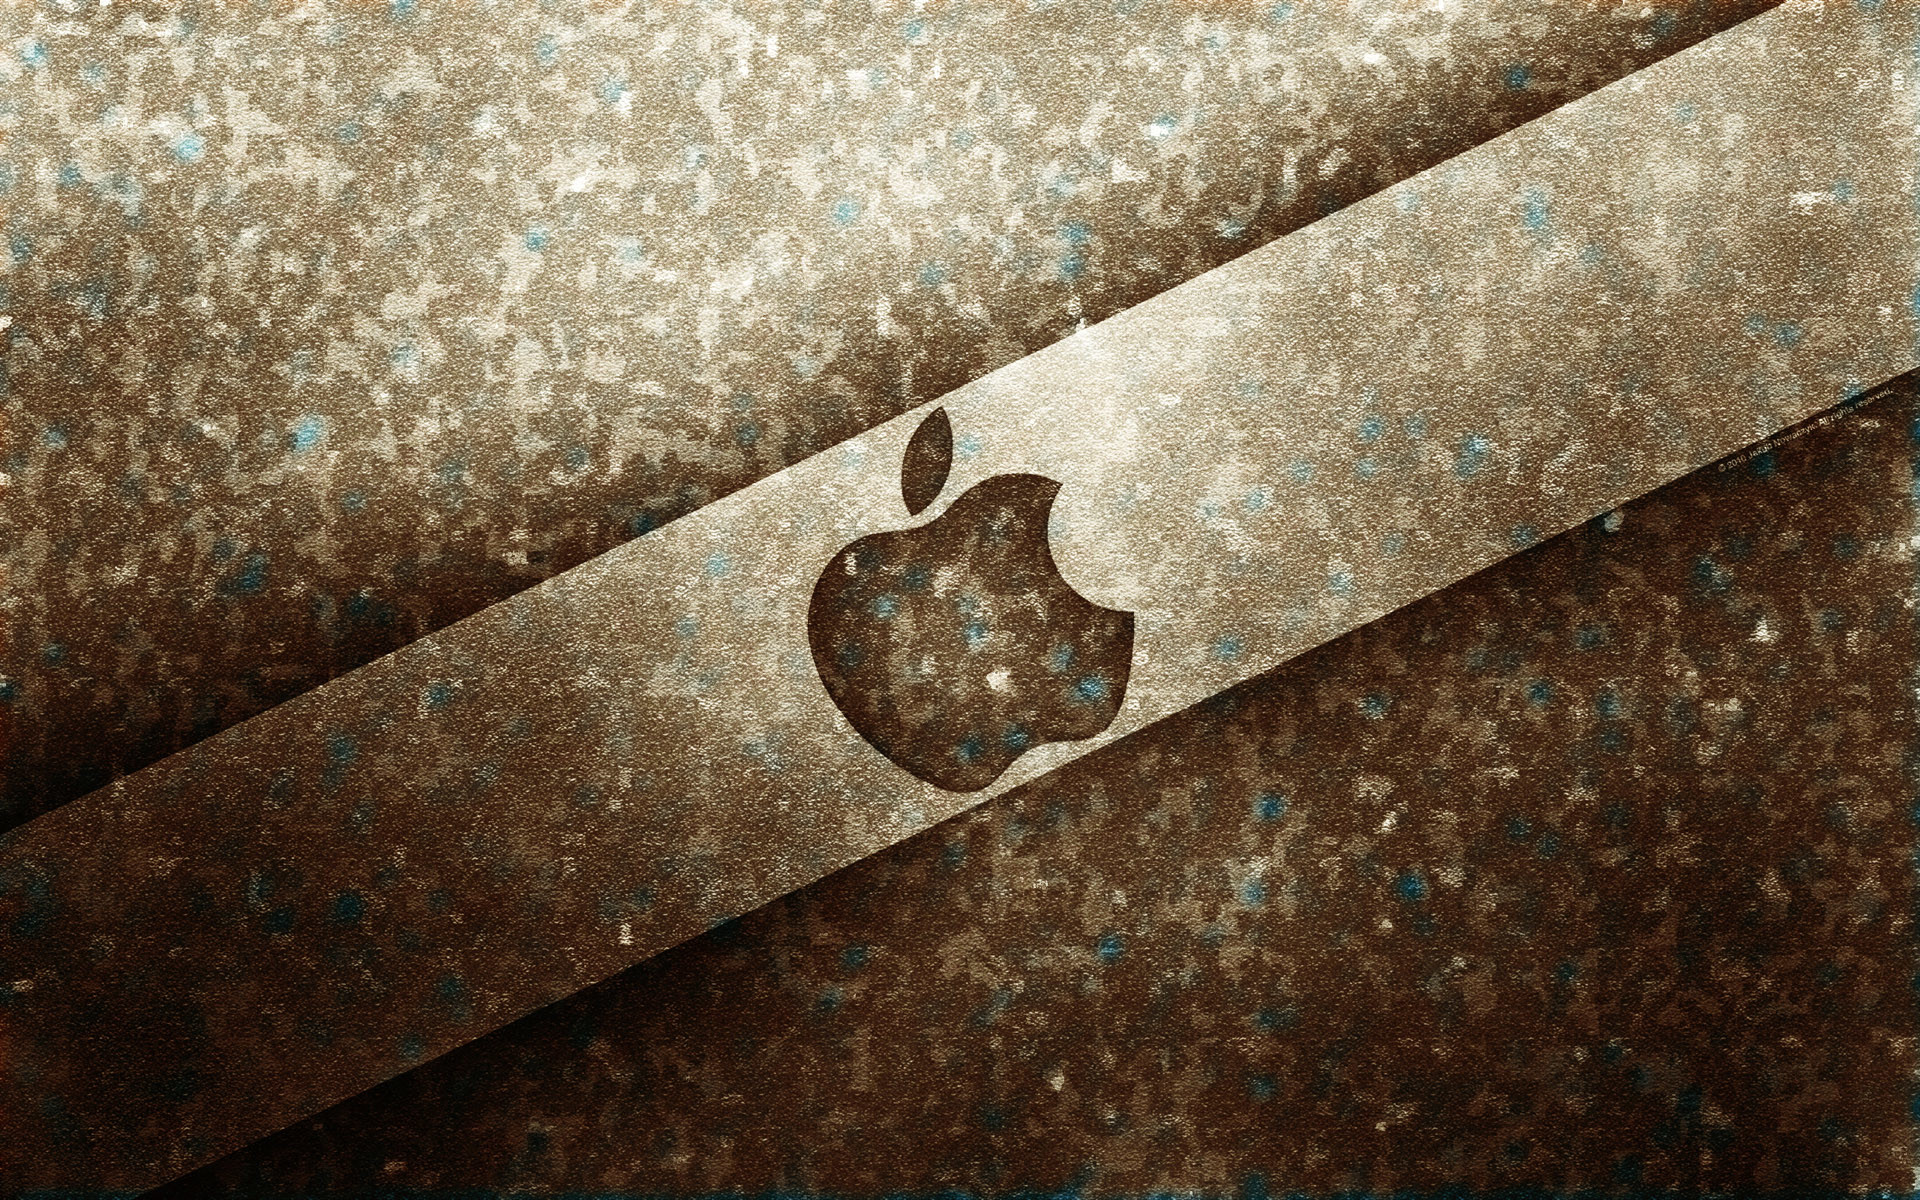 Camouflage Apple wallpapers and images – wallpapers, pictures, photos